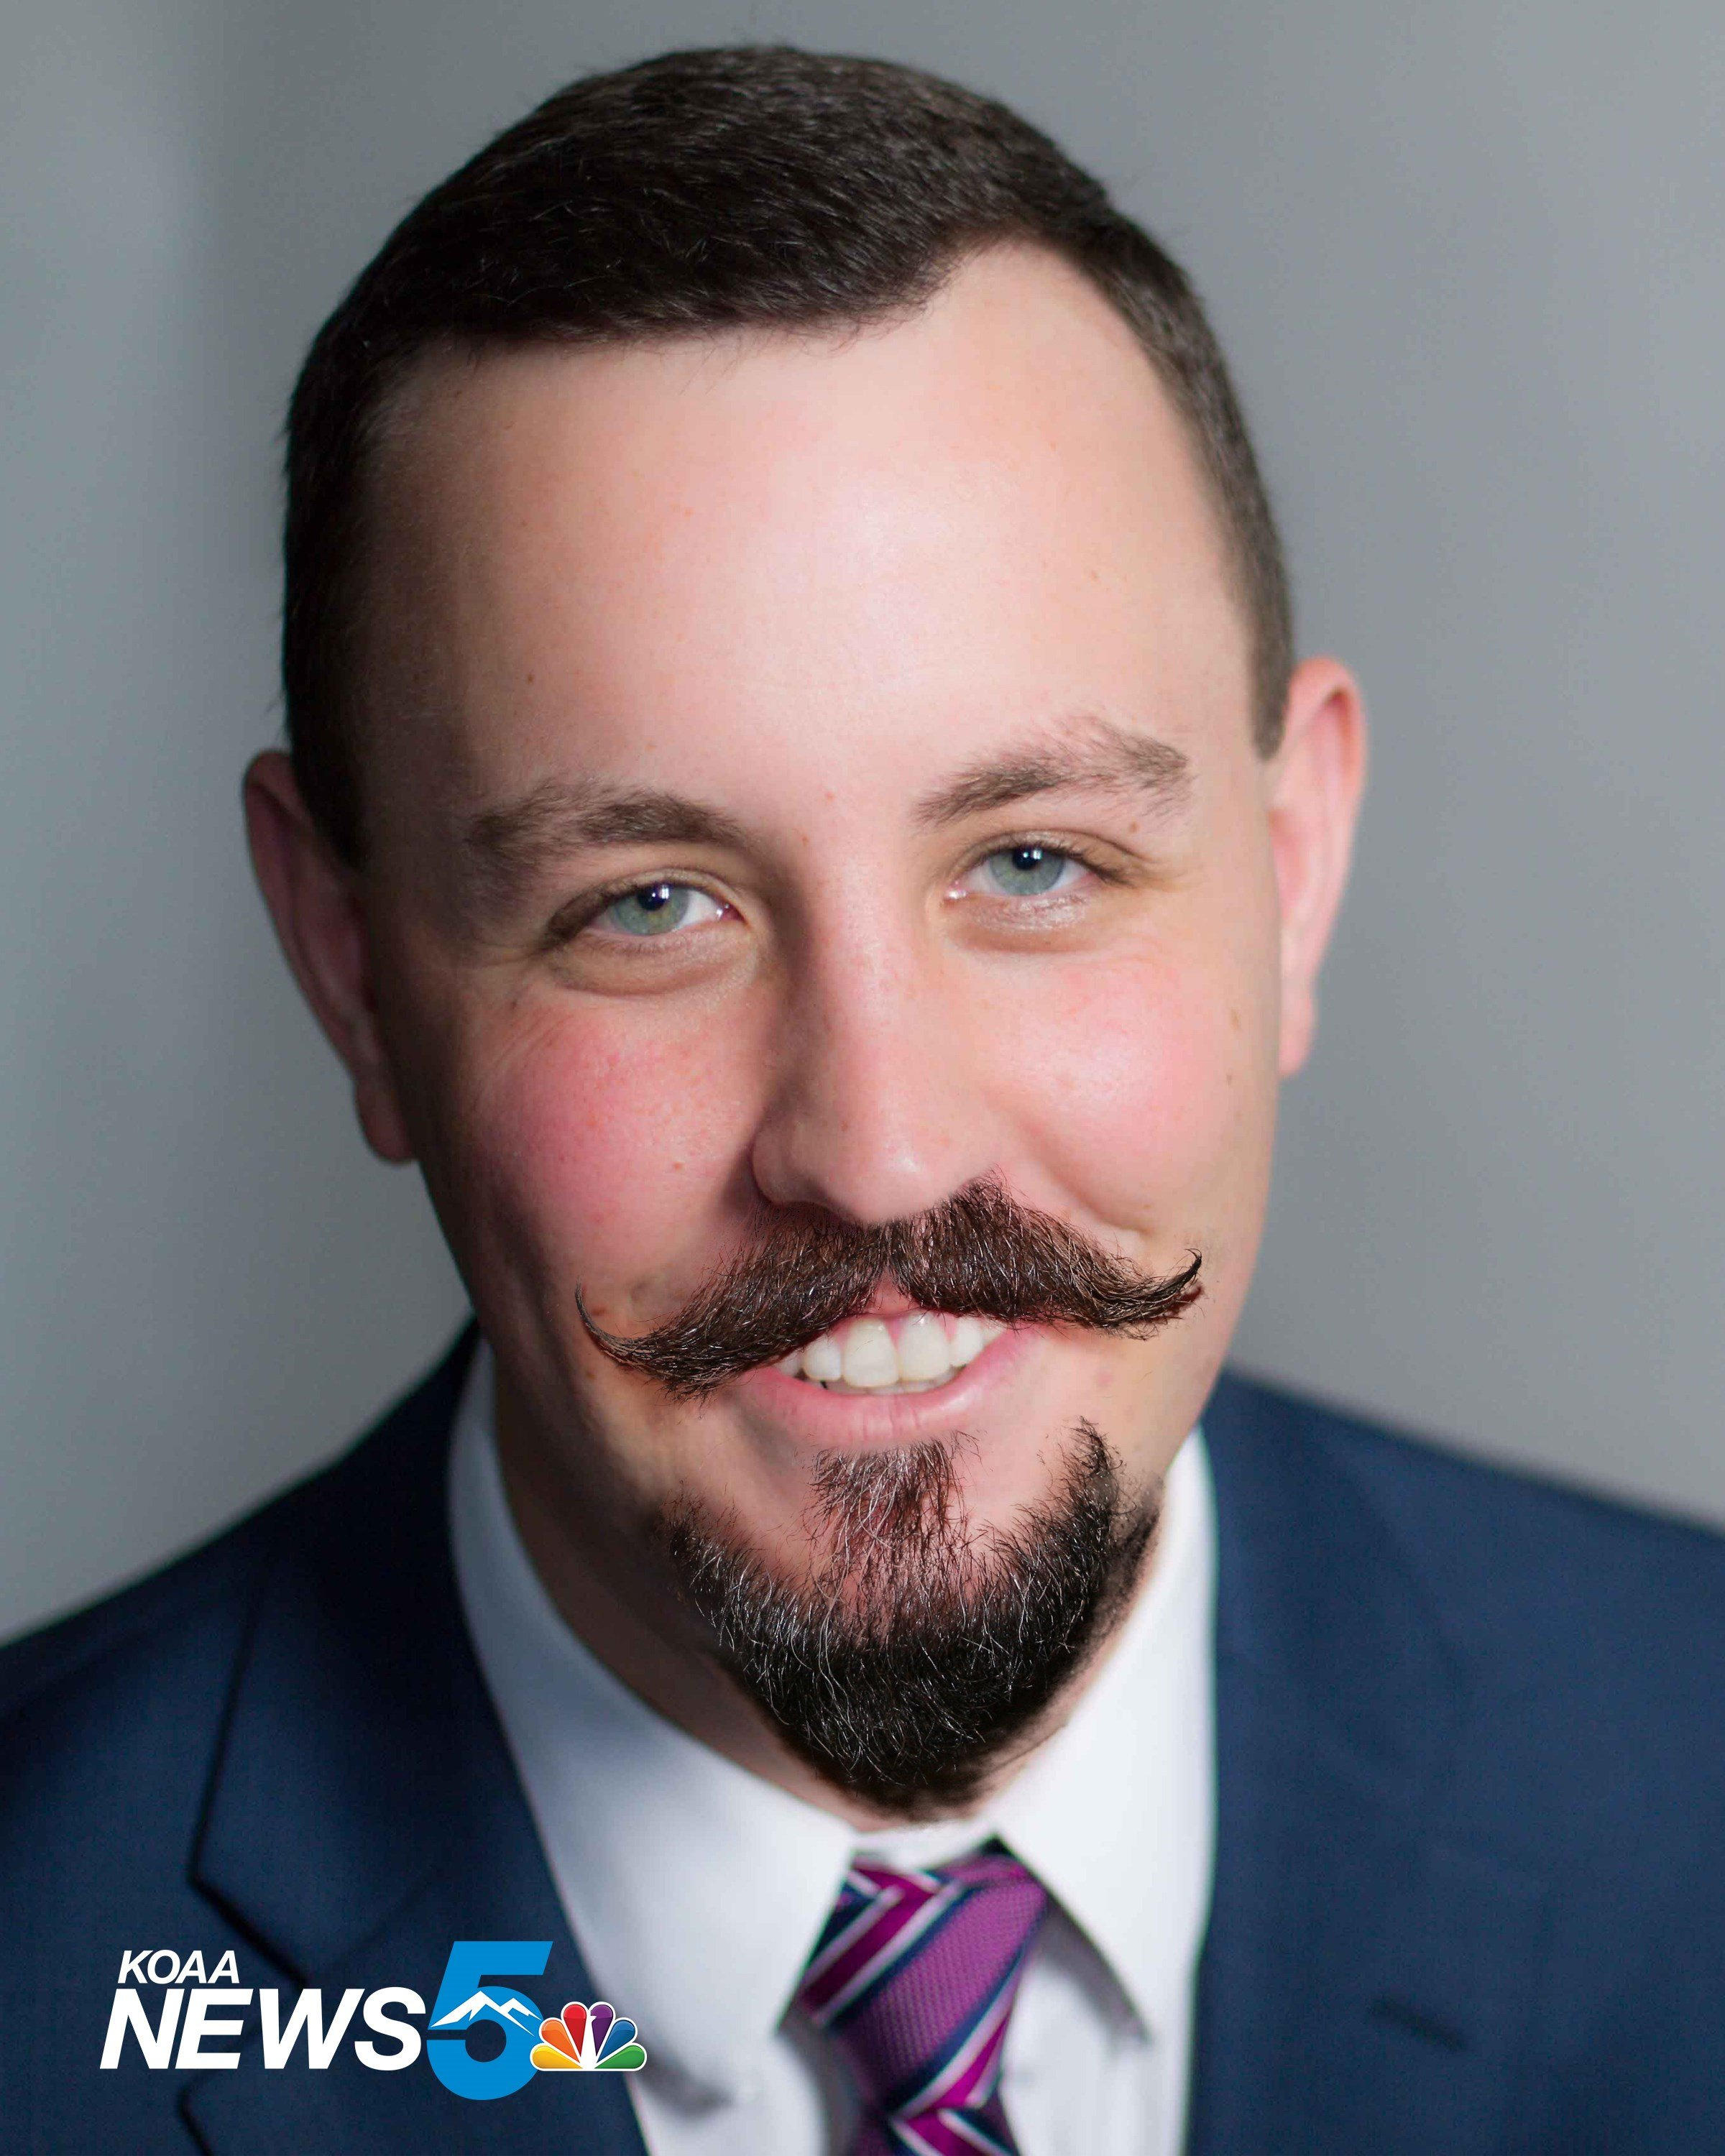 Artist's rendition of how Sam Schreier would look with a goatee, mustache combo. (KOAA)